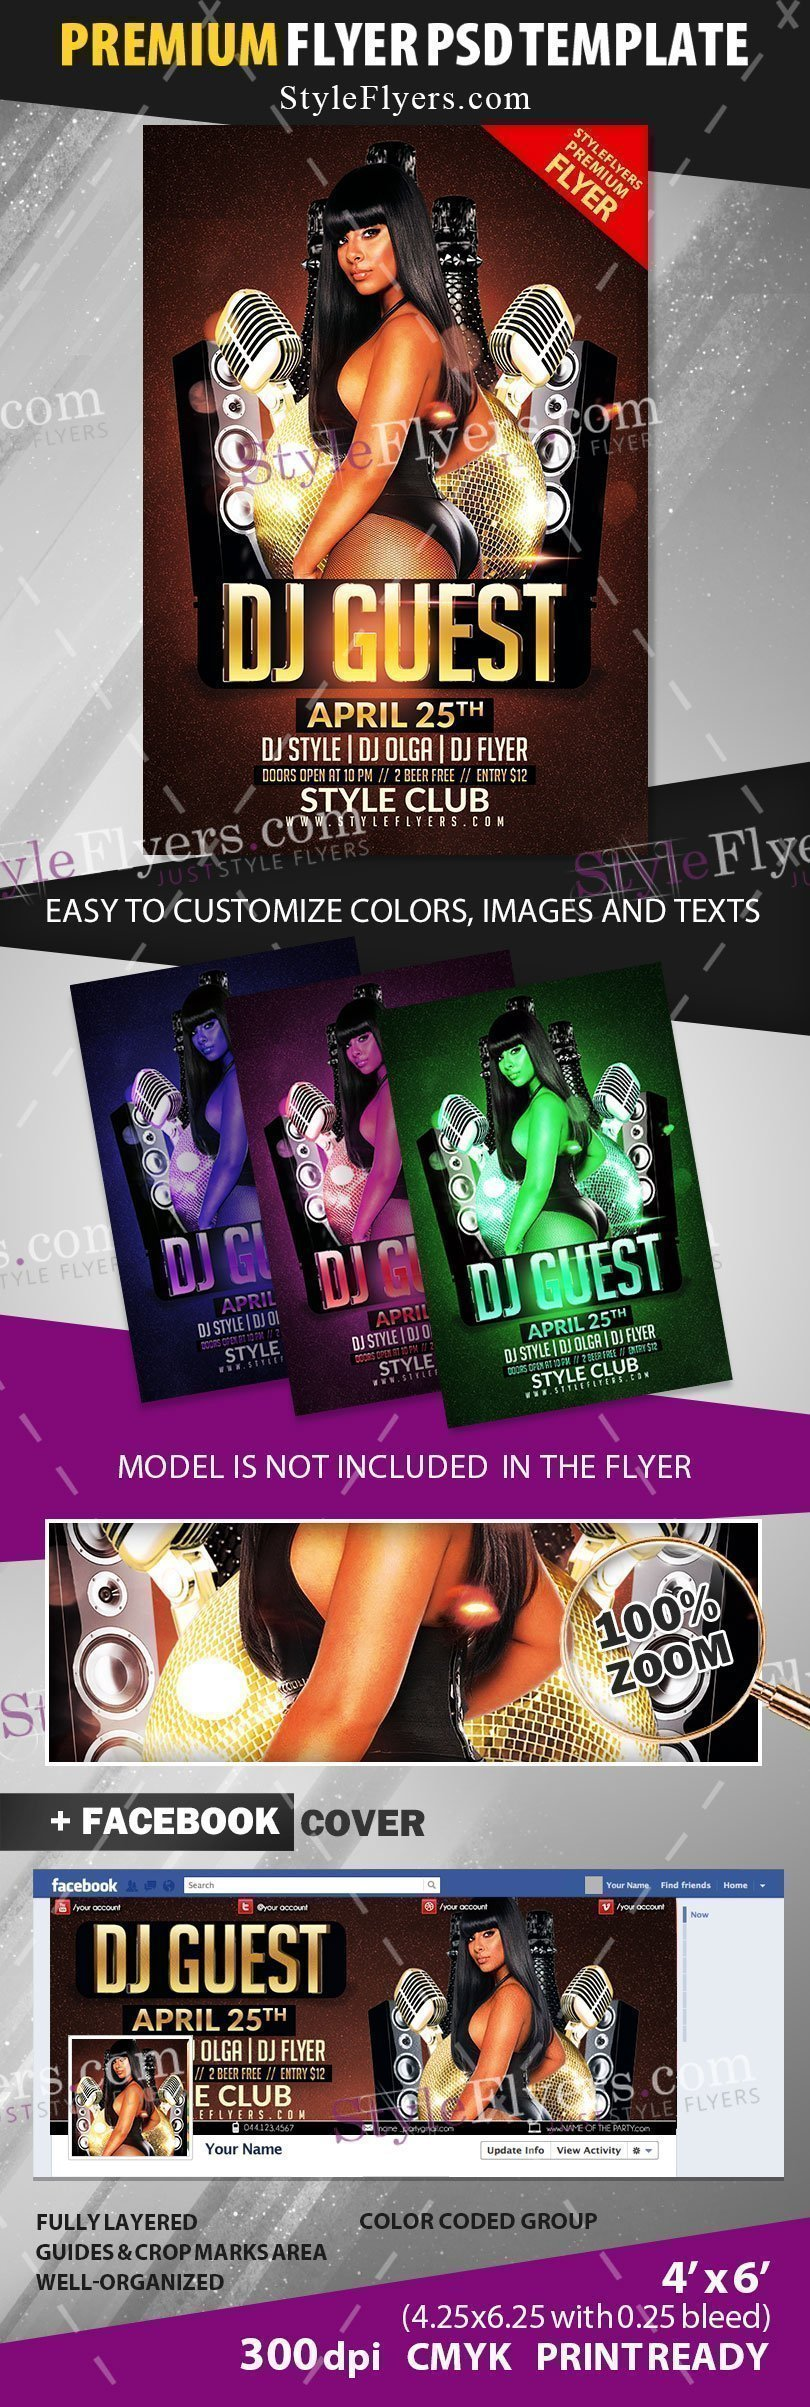 preview_Dj_Guest_Flyer_premium_template